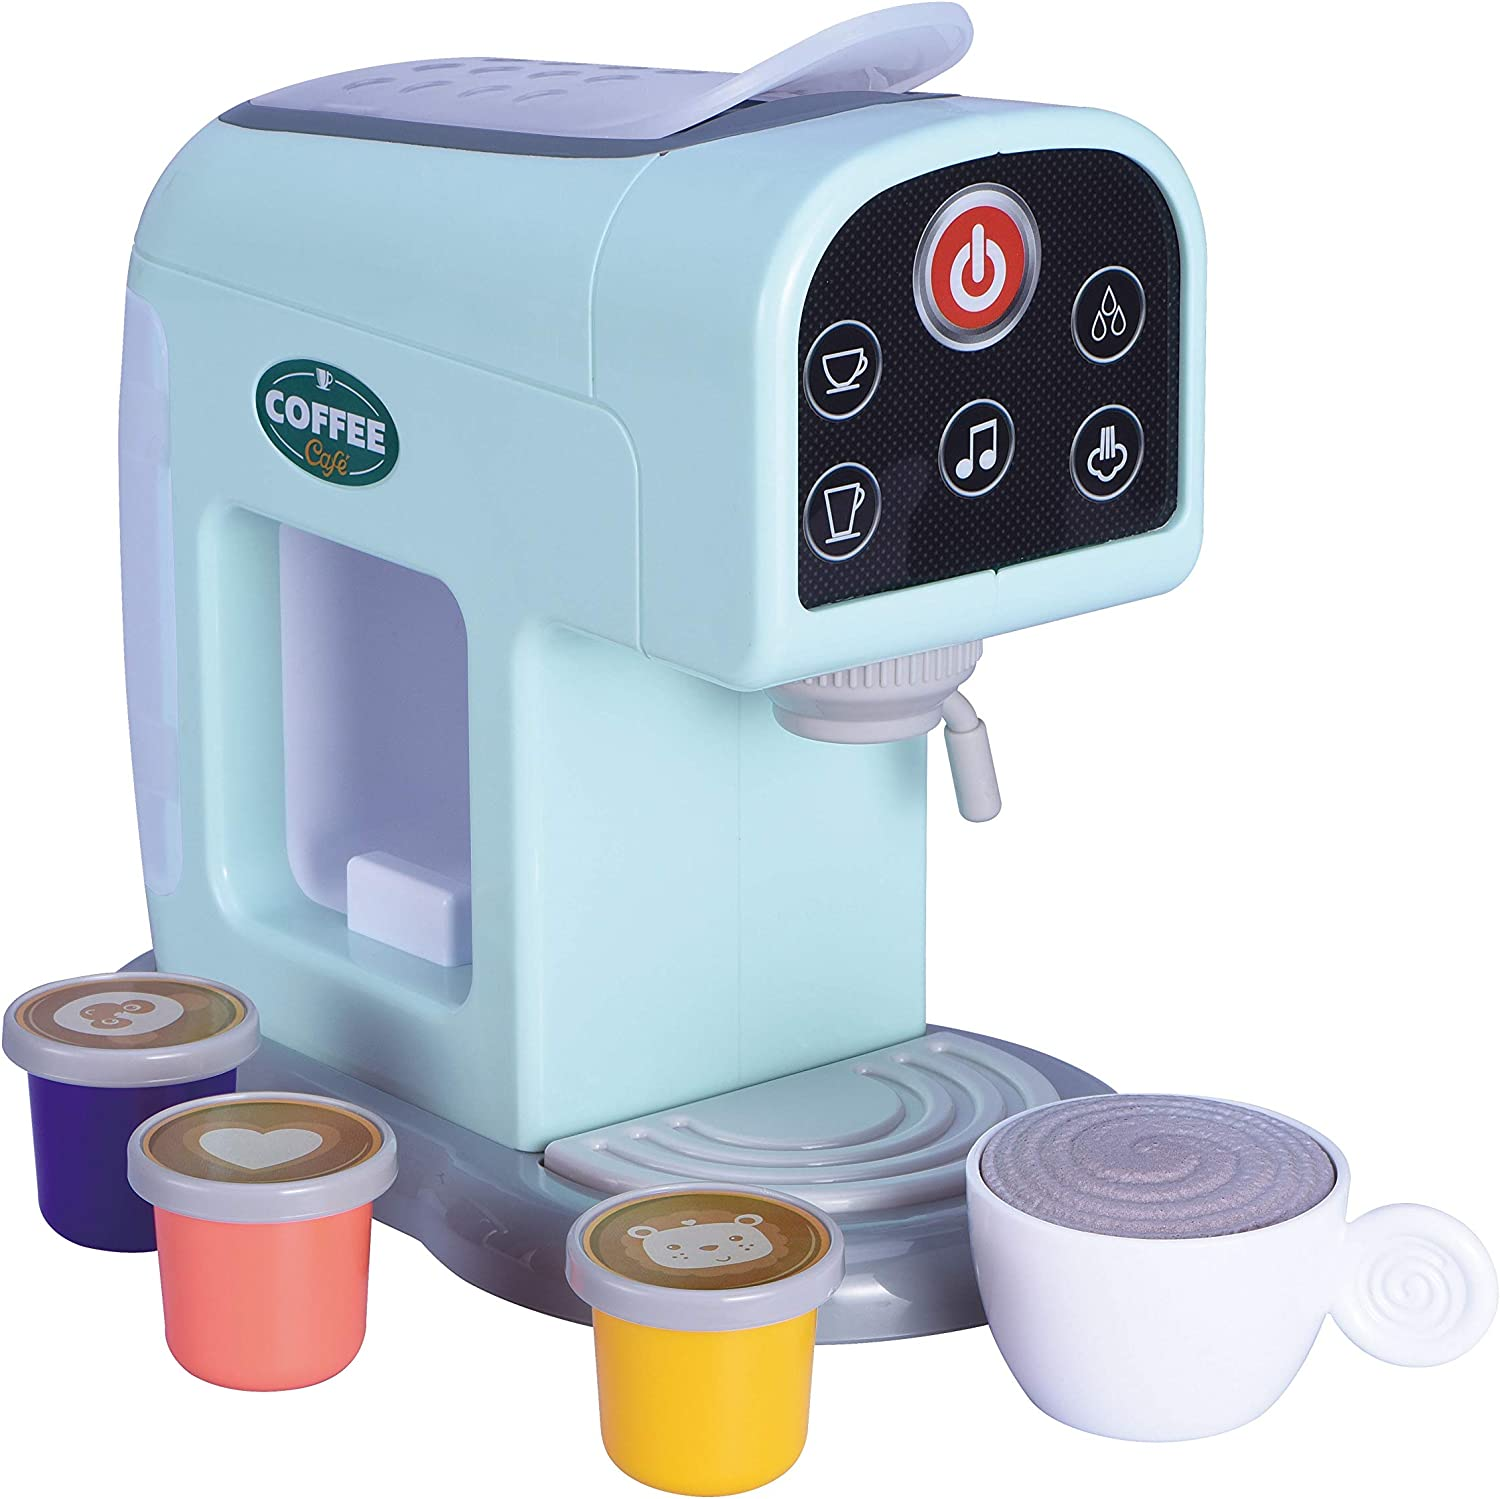 Oojami My First Kitchen Appliance Coffee Maker Set Includes Coffee pods Realistic Sounds and Lights Makes an Ideal Gift for Kids